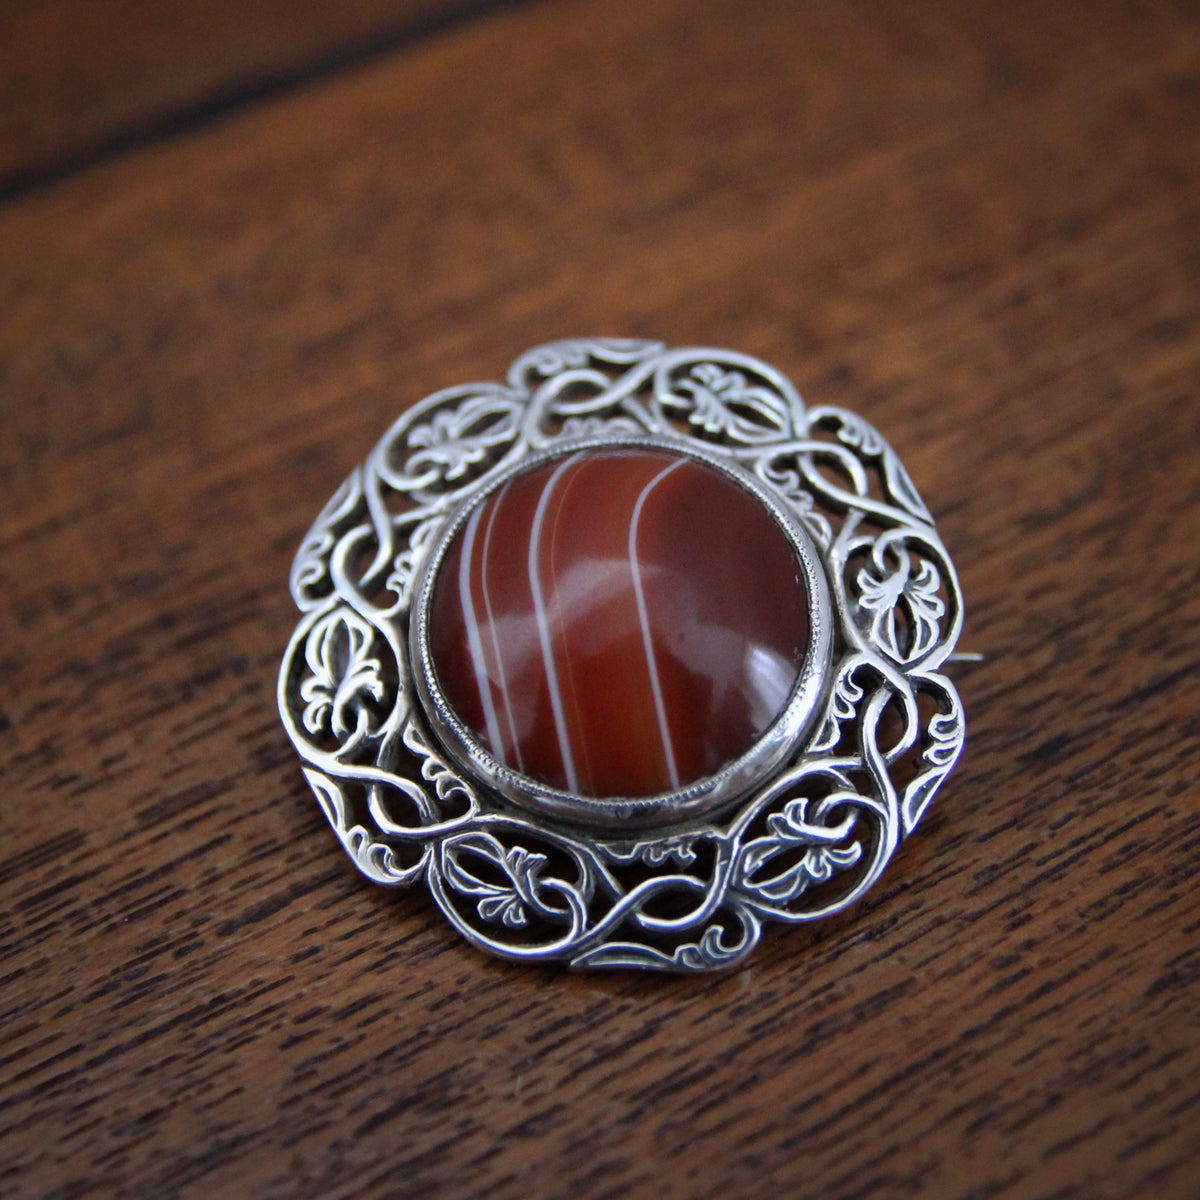 Iona Scottish Silver & Agate Pin